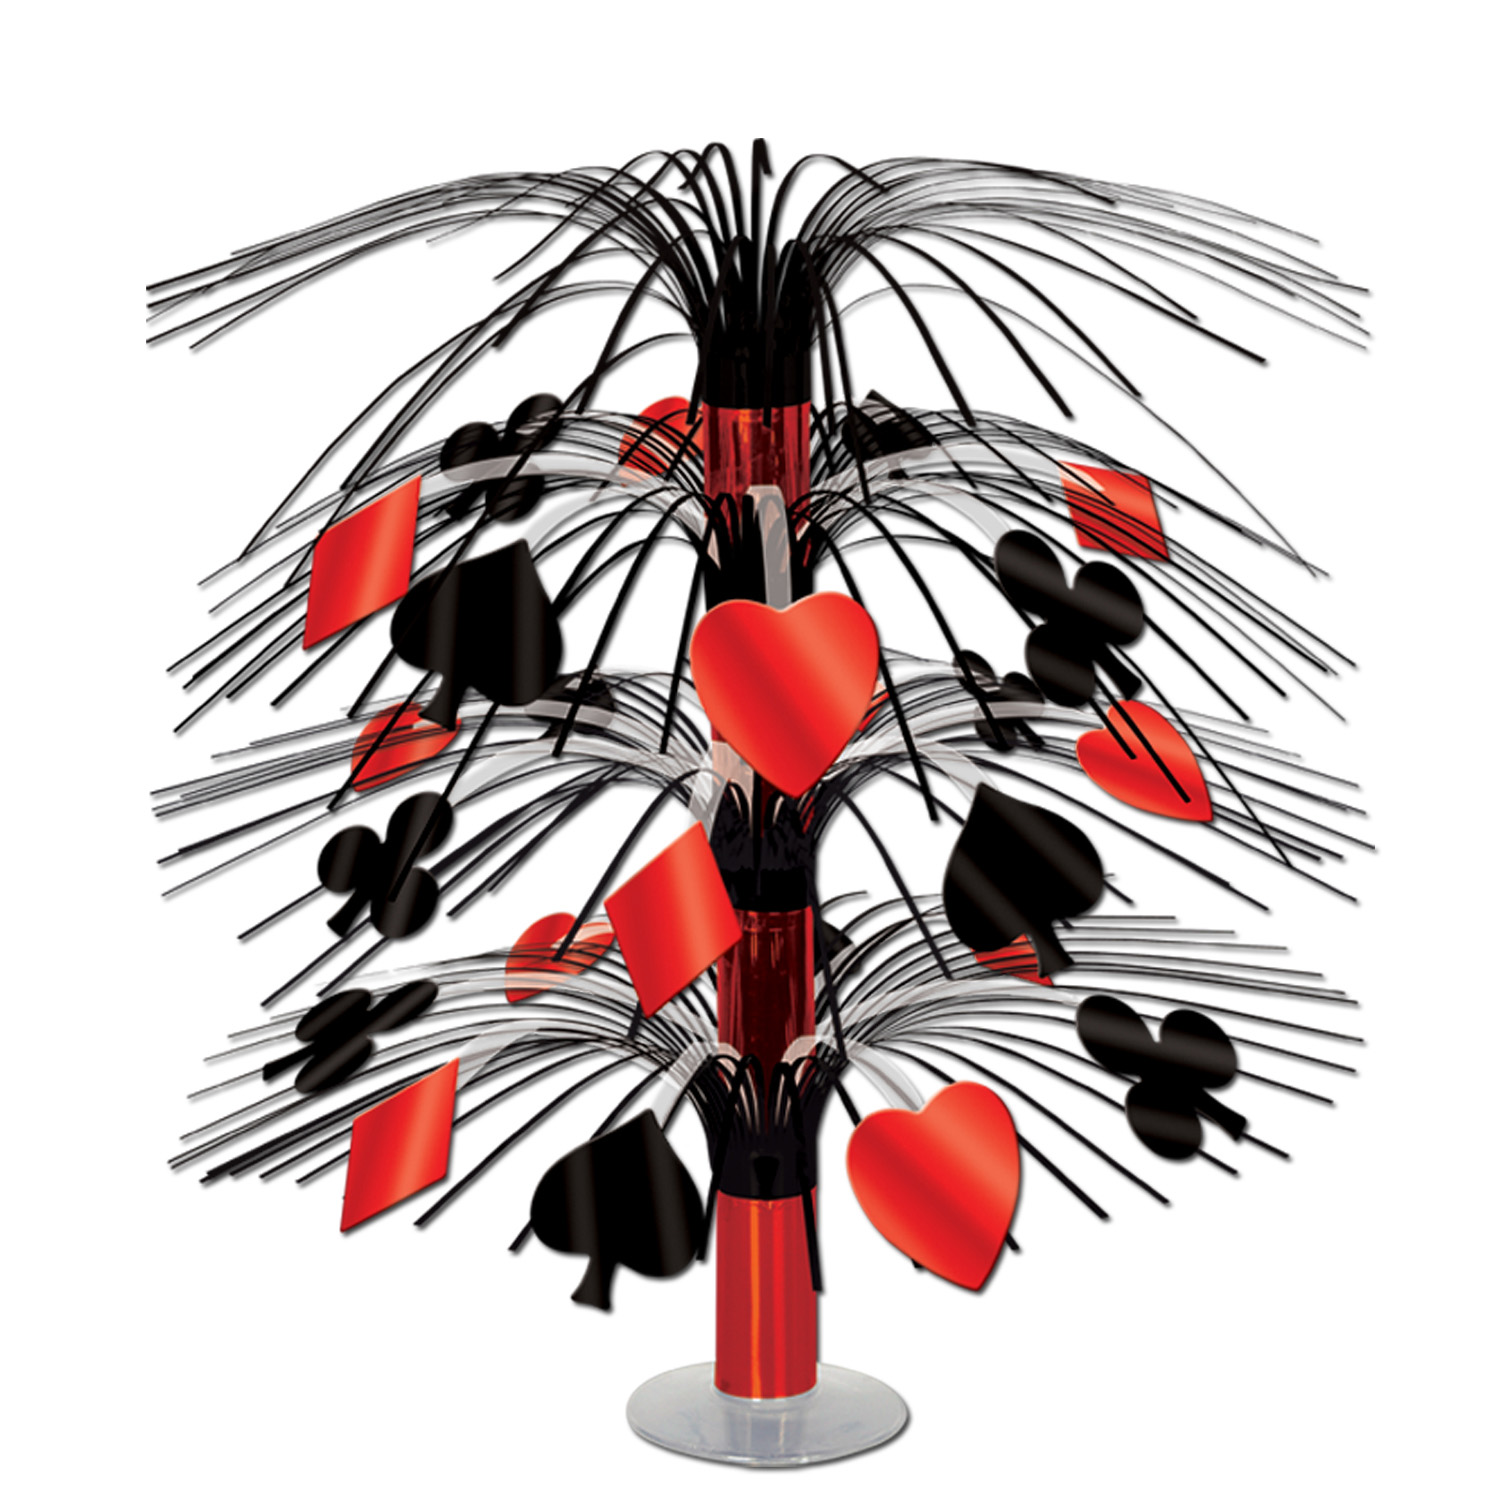 Casino Cascade Centerpiece (Pack of 6) casino, cascade, centerpiece, poker, gambling, Las Vegas, night, event, party, red, black, table, decoration,